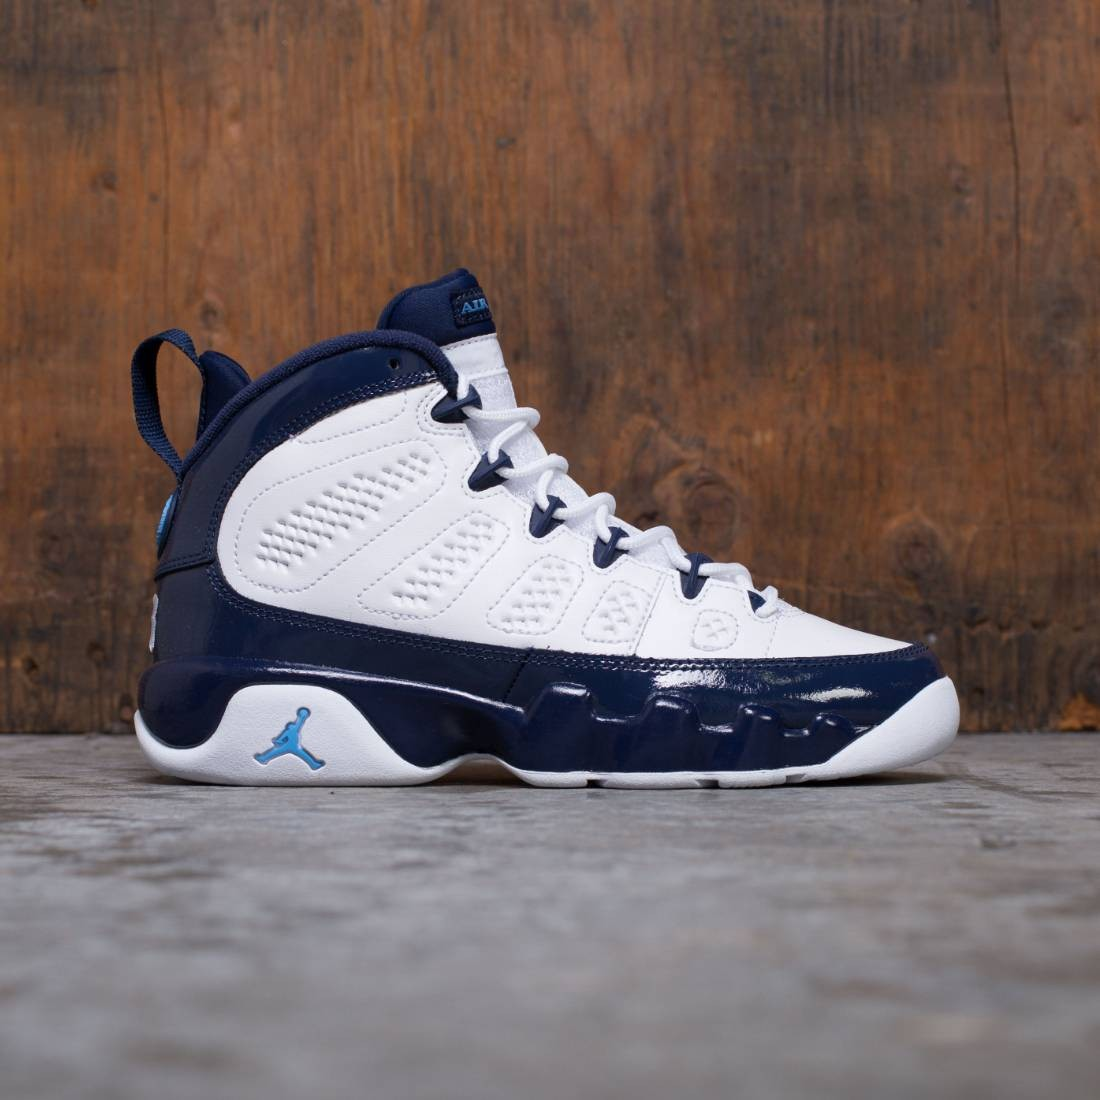 premium selection 8fe52 cda29 jordan big kids boy air jordan 9 retro gs white university blue midnight  navy